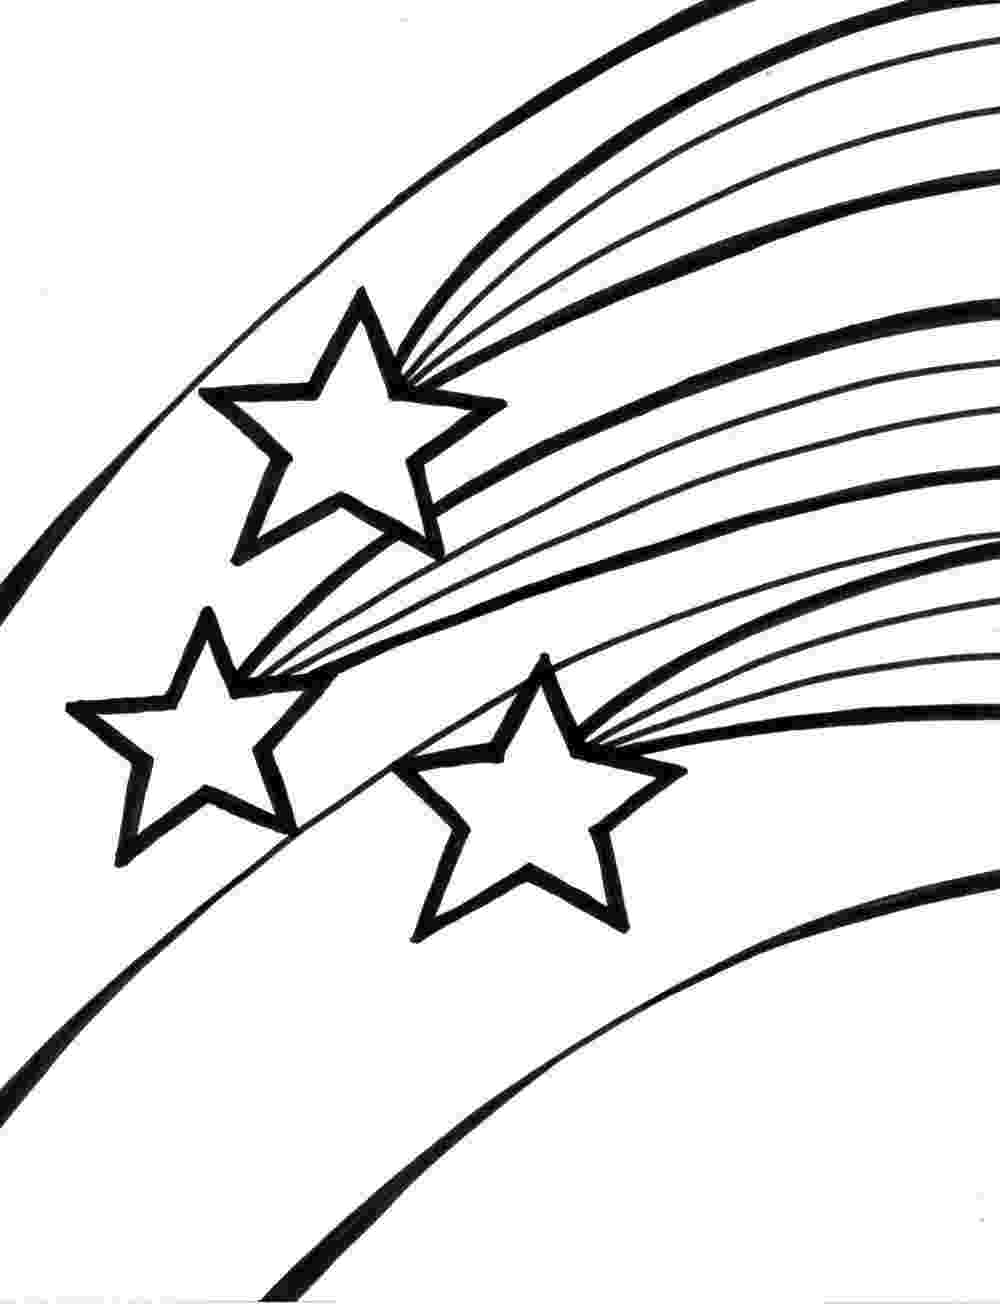 coloring stars star coloring page download free star coloring page for stars coloring